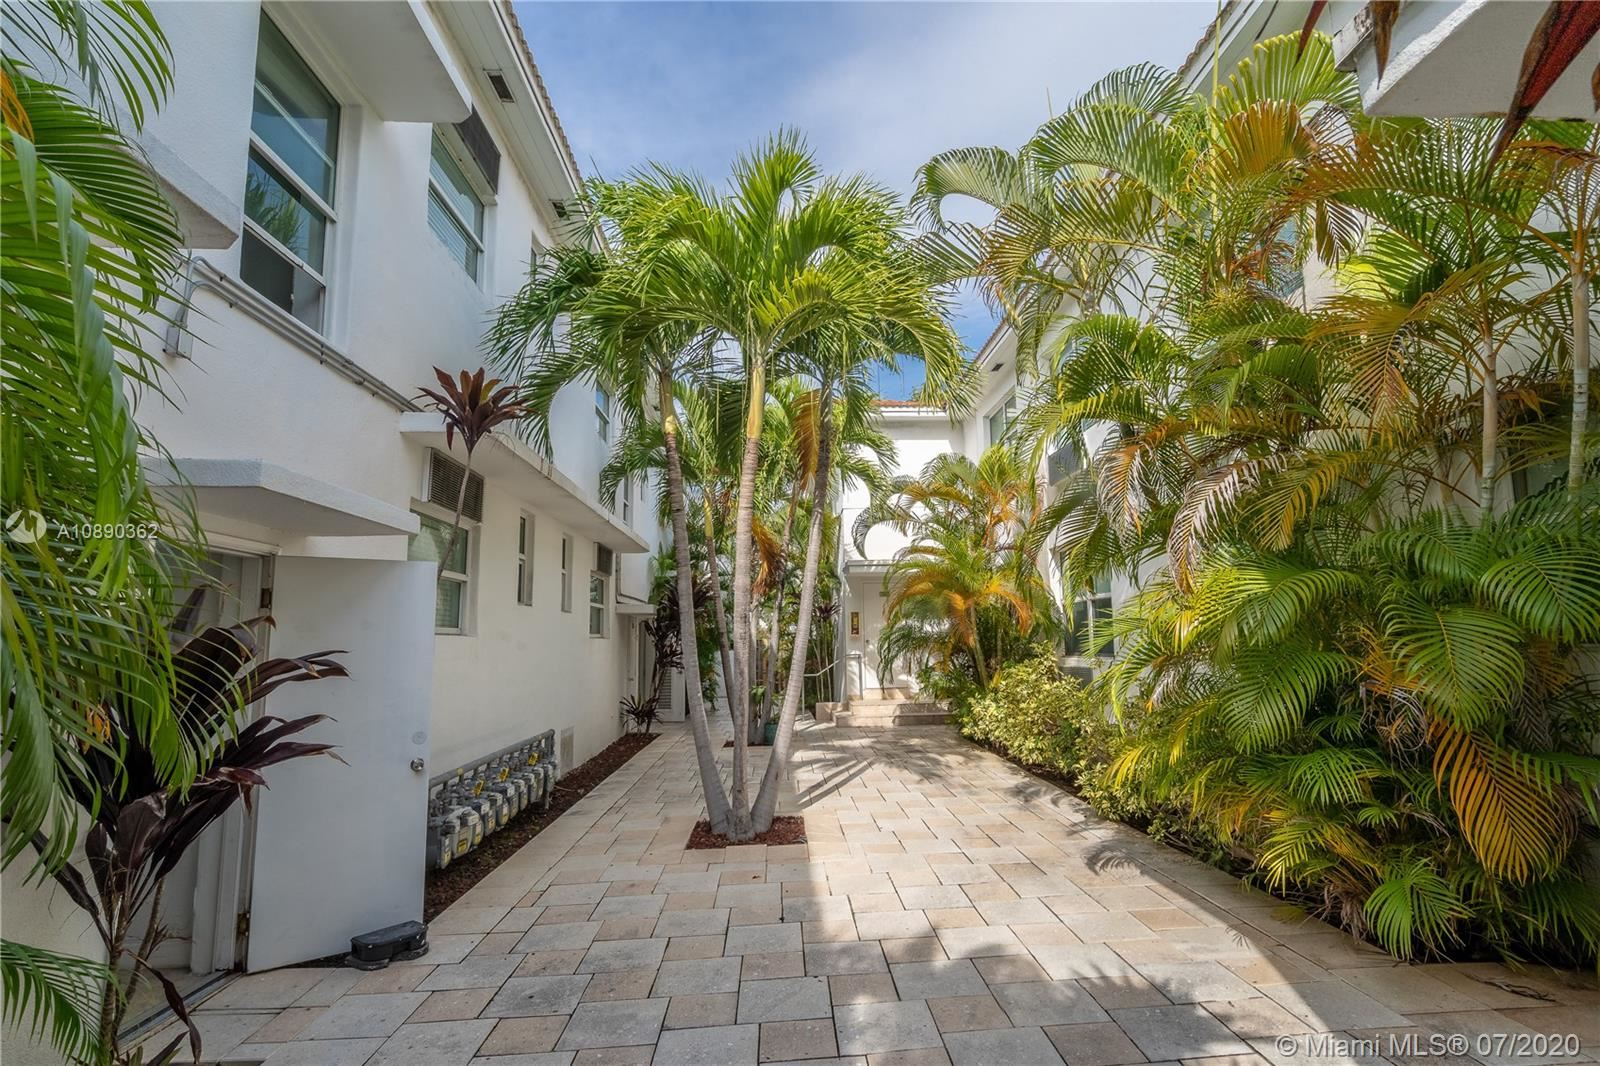 Photo of 7610 Byron Ave #15, Miami Beach, FL 33141 (MLS # A10890362)